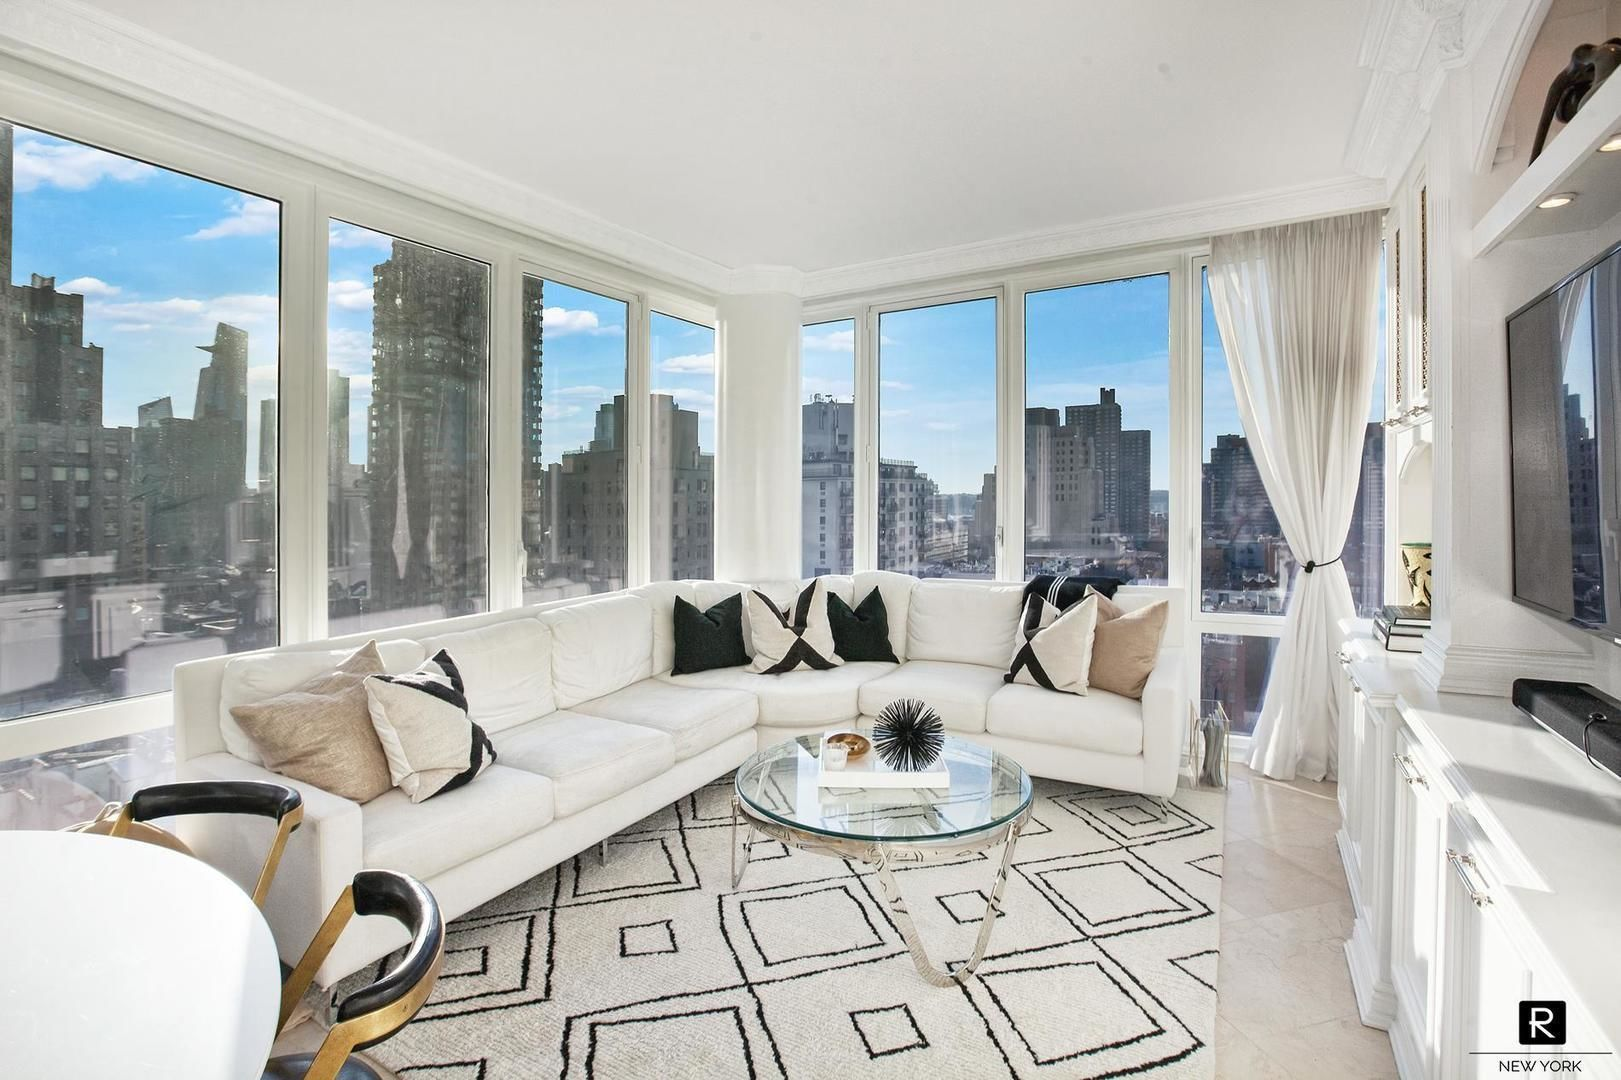 Apartment for sale at 310 West 52nd Street, Apt 14-B